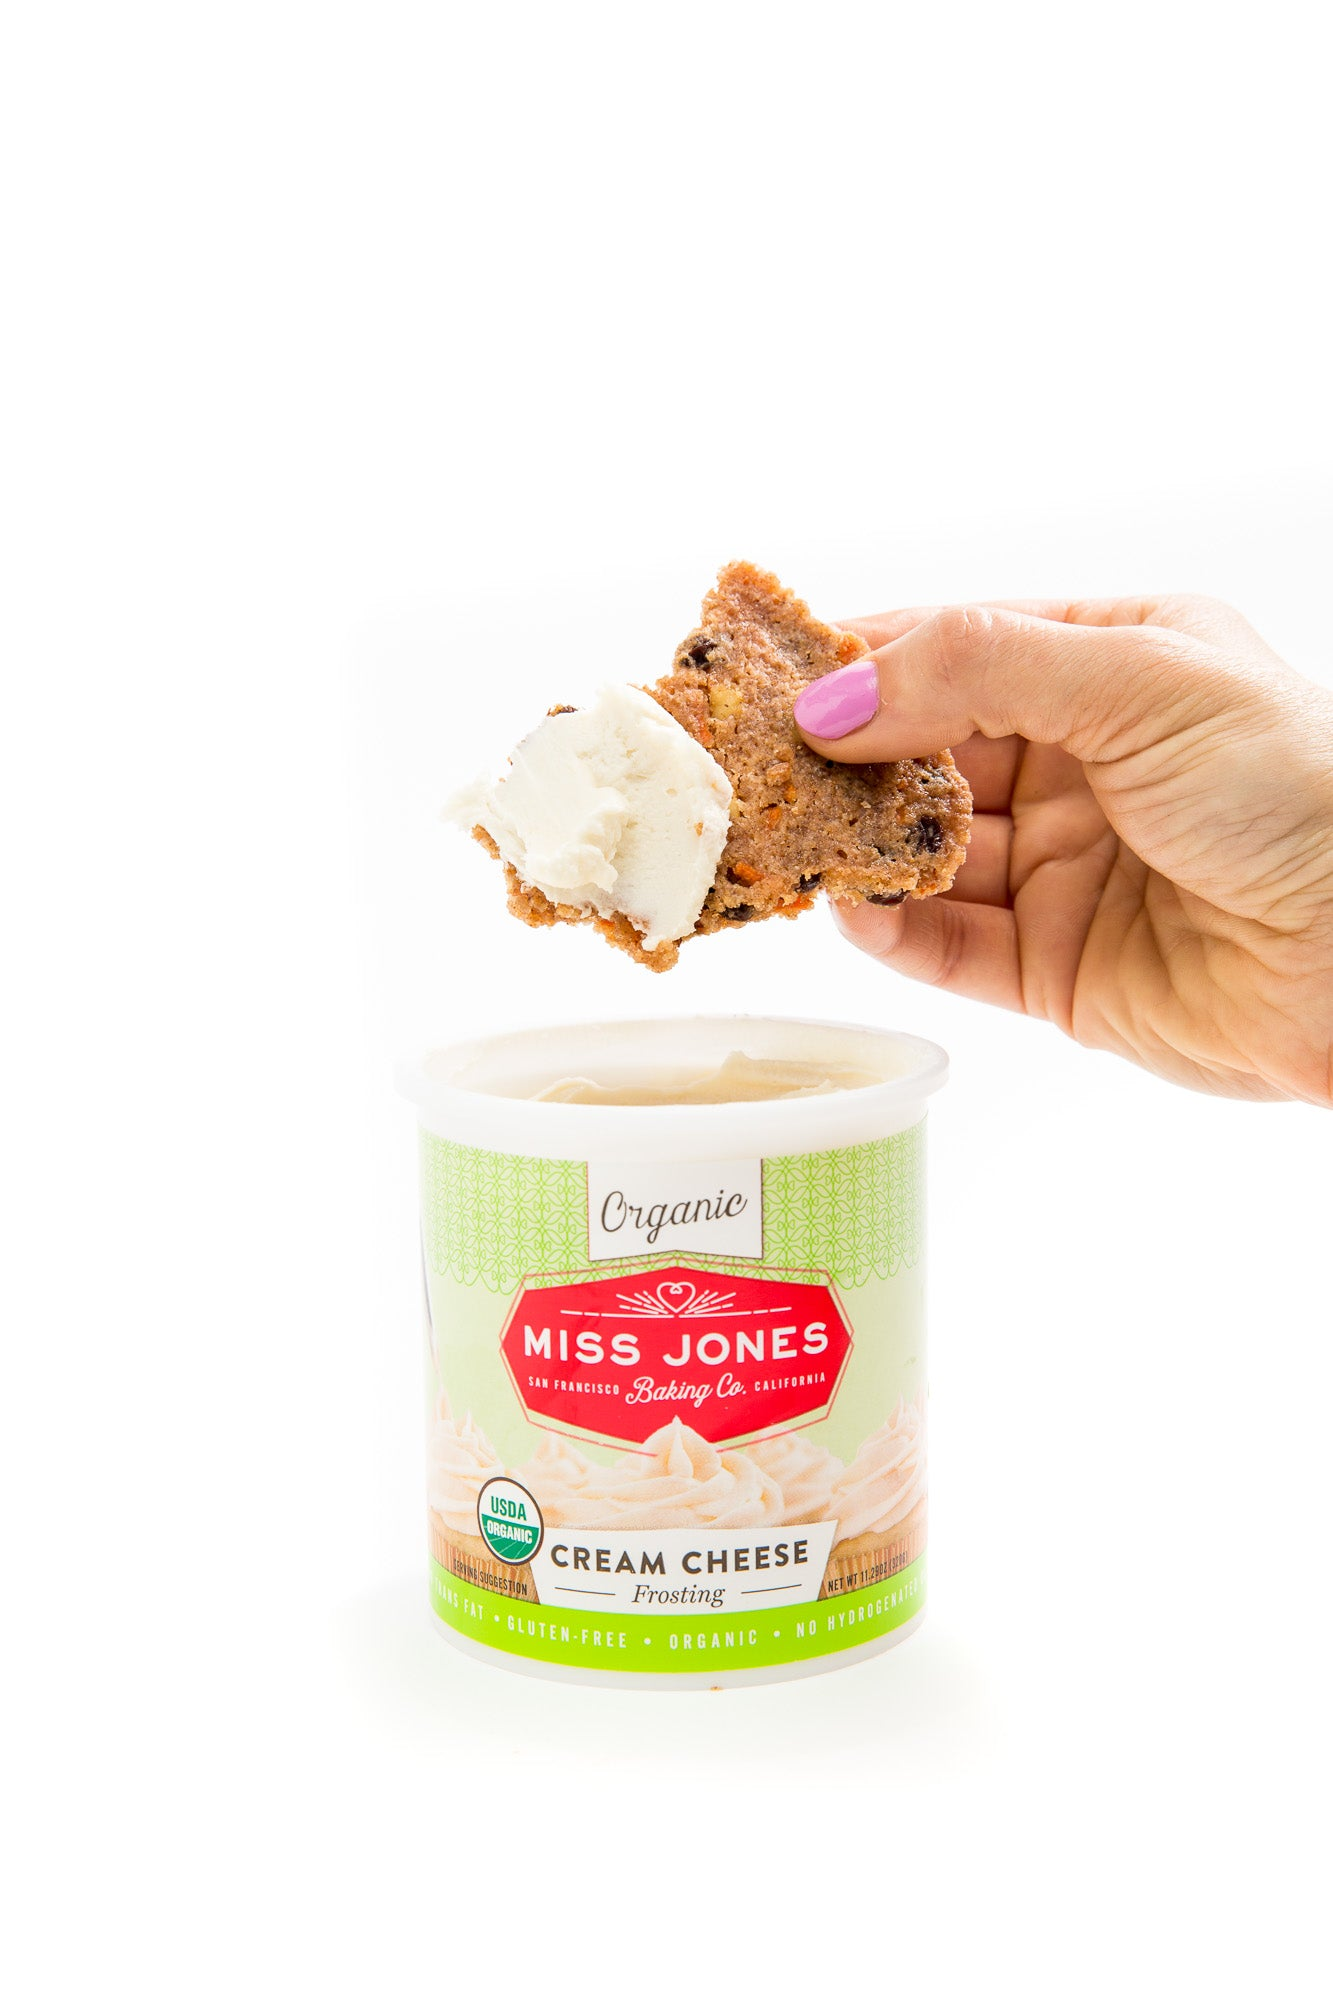 Image of Miss Jones Baking Co Carrot Cake Bark being dipped into a jar of Miss Jones Cream Cheese Frosting